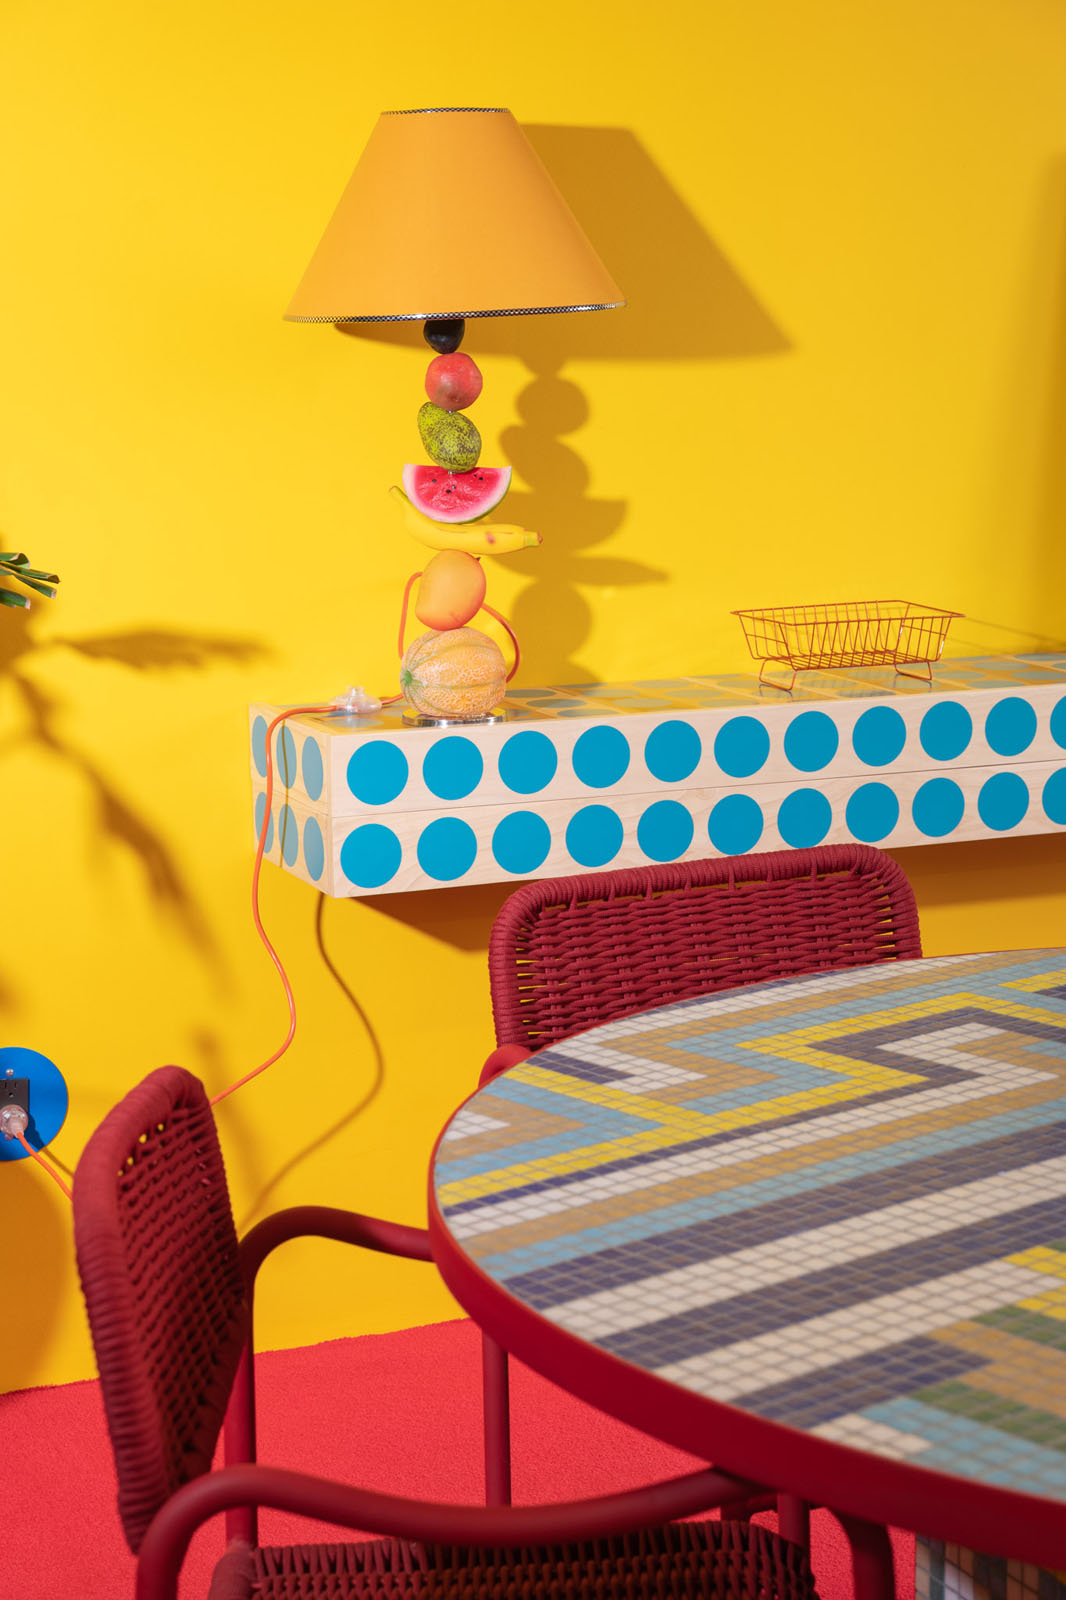 AGO Fruit Lamp and Table